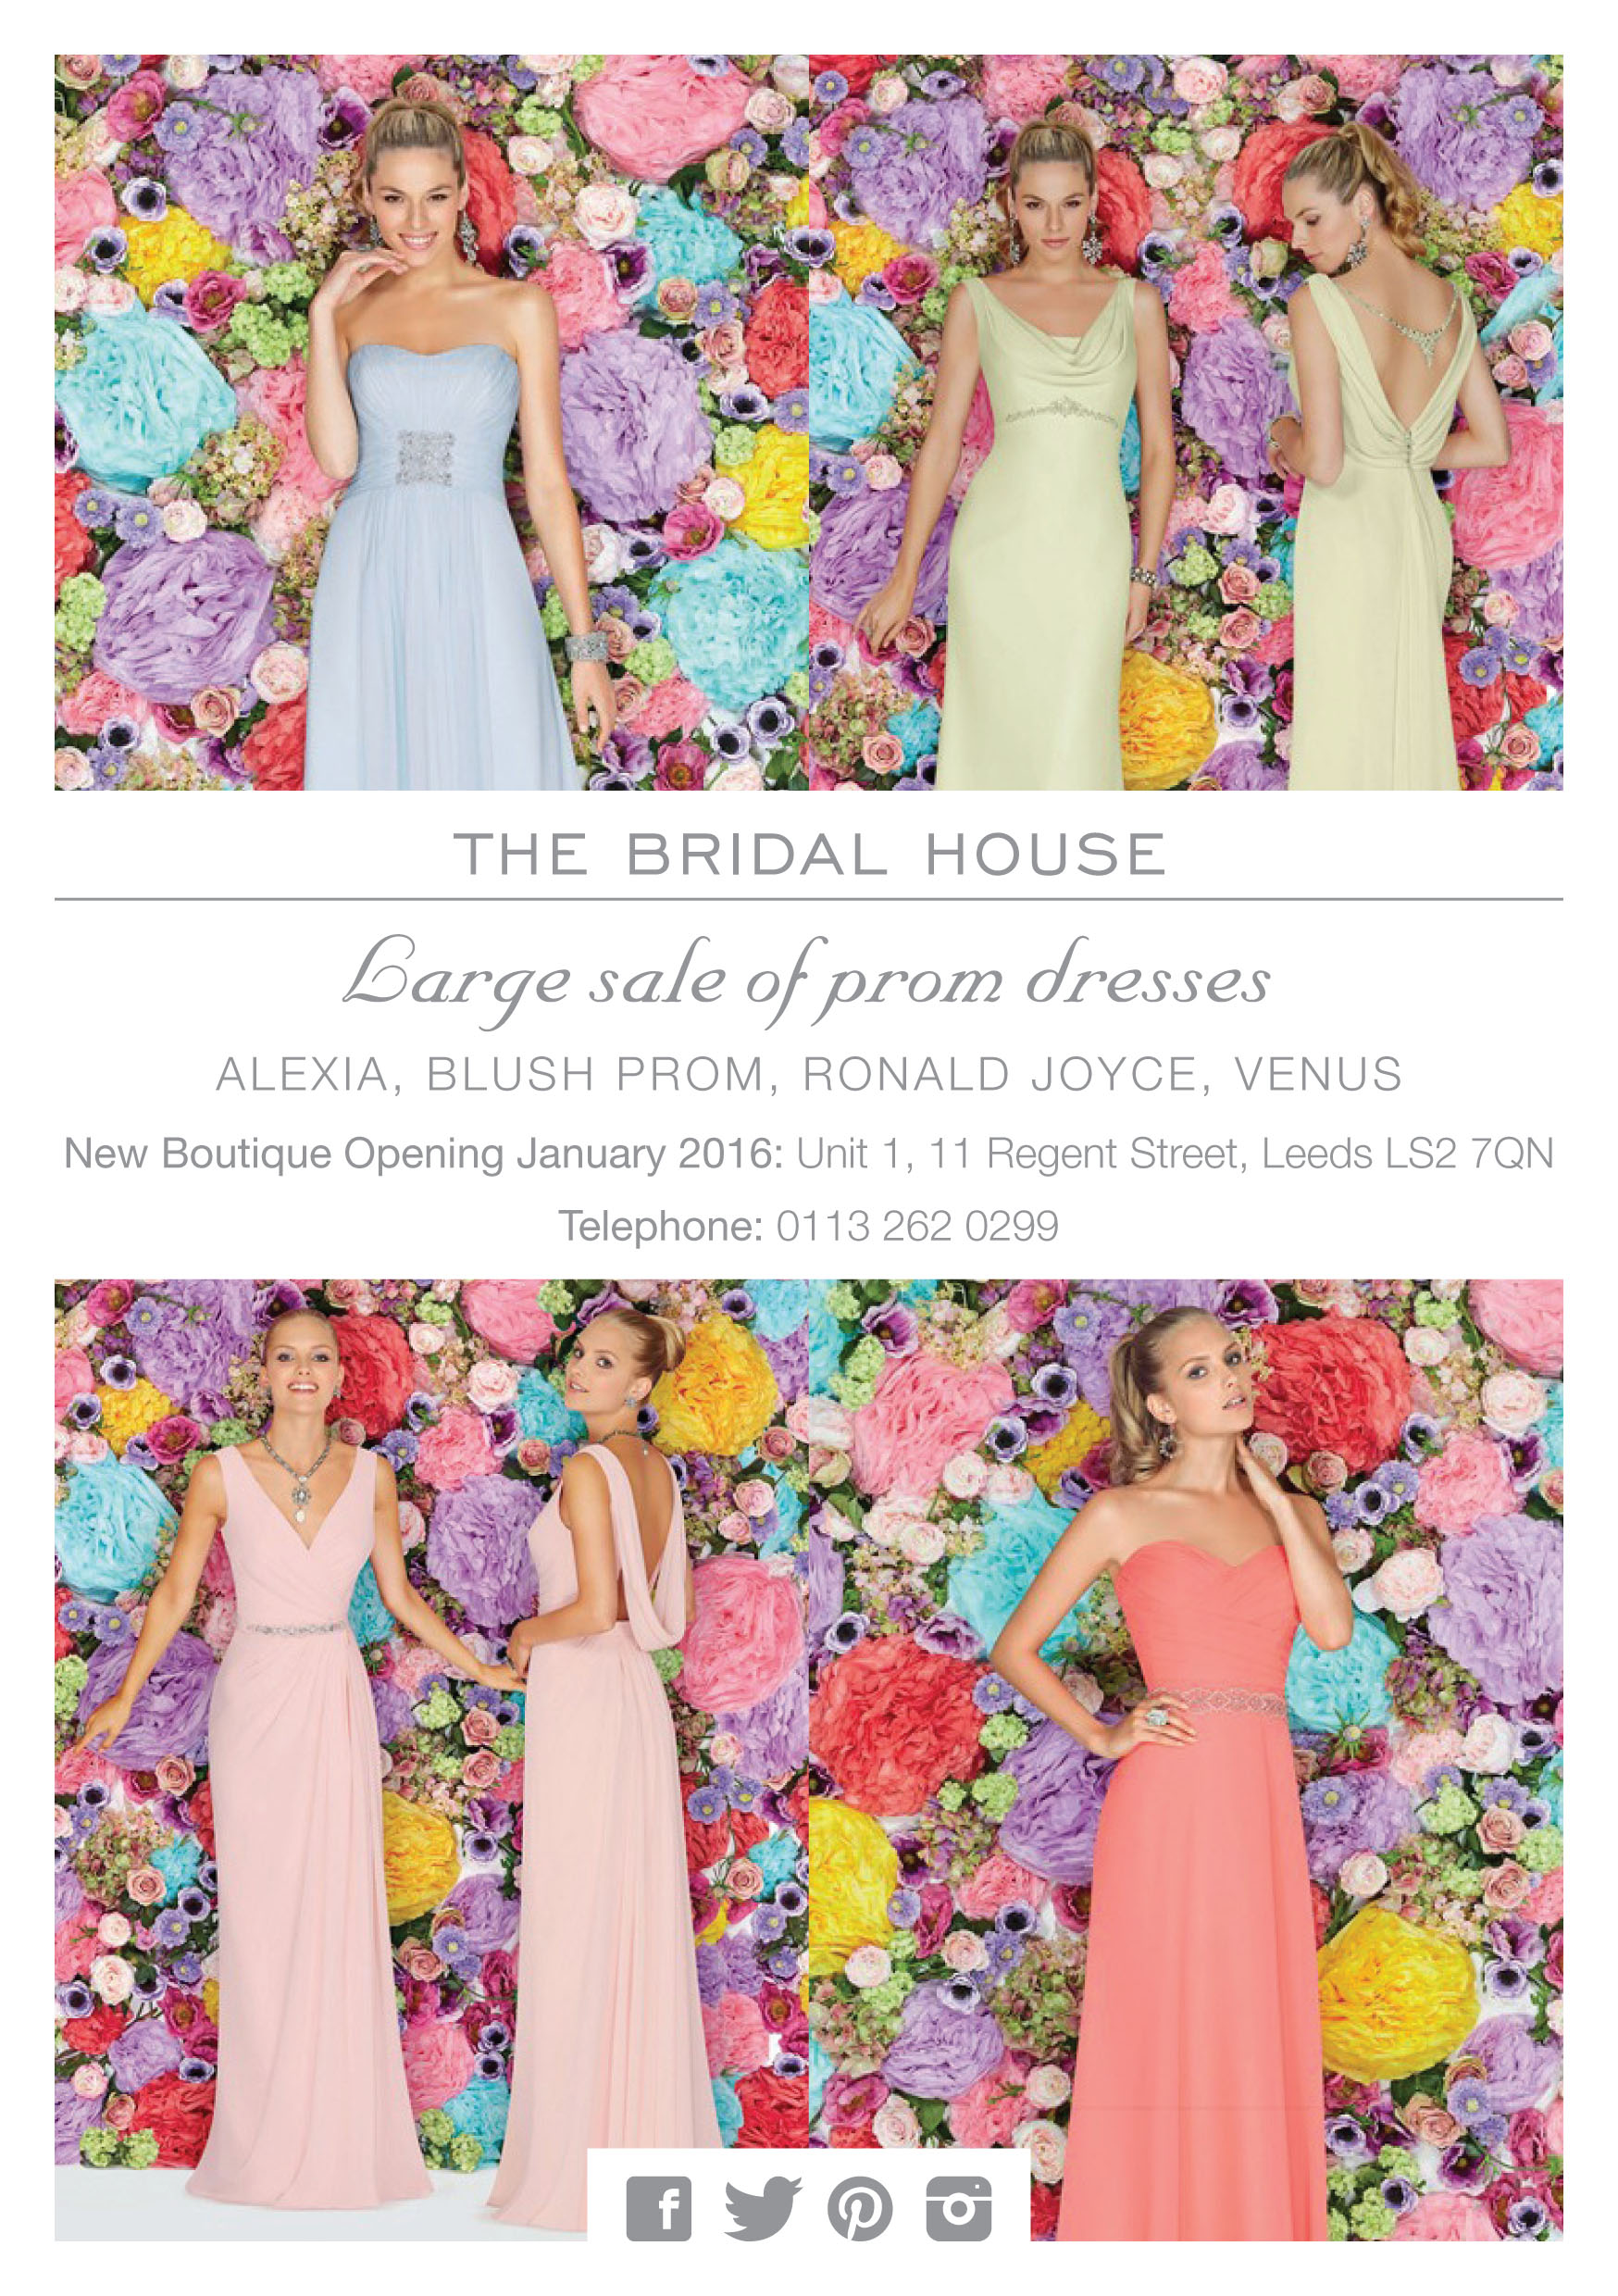 The Bridal House, Leeds